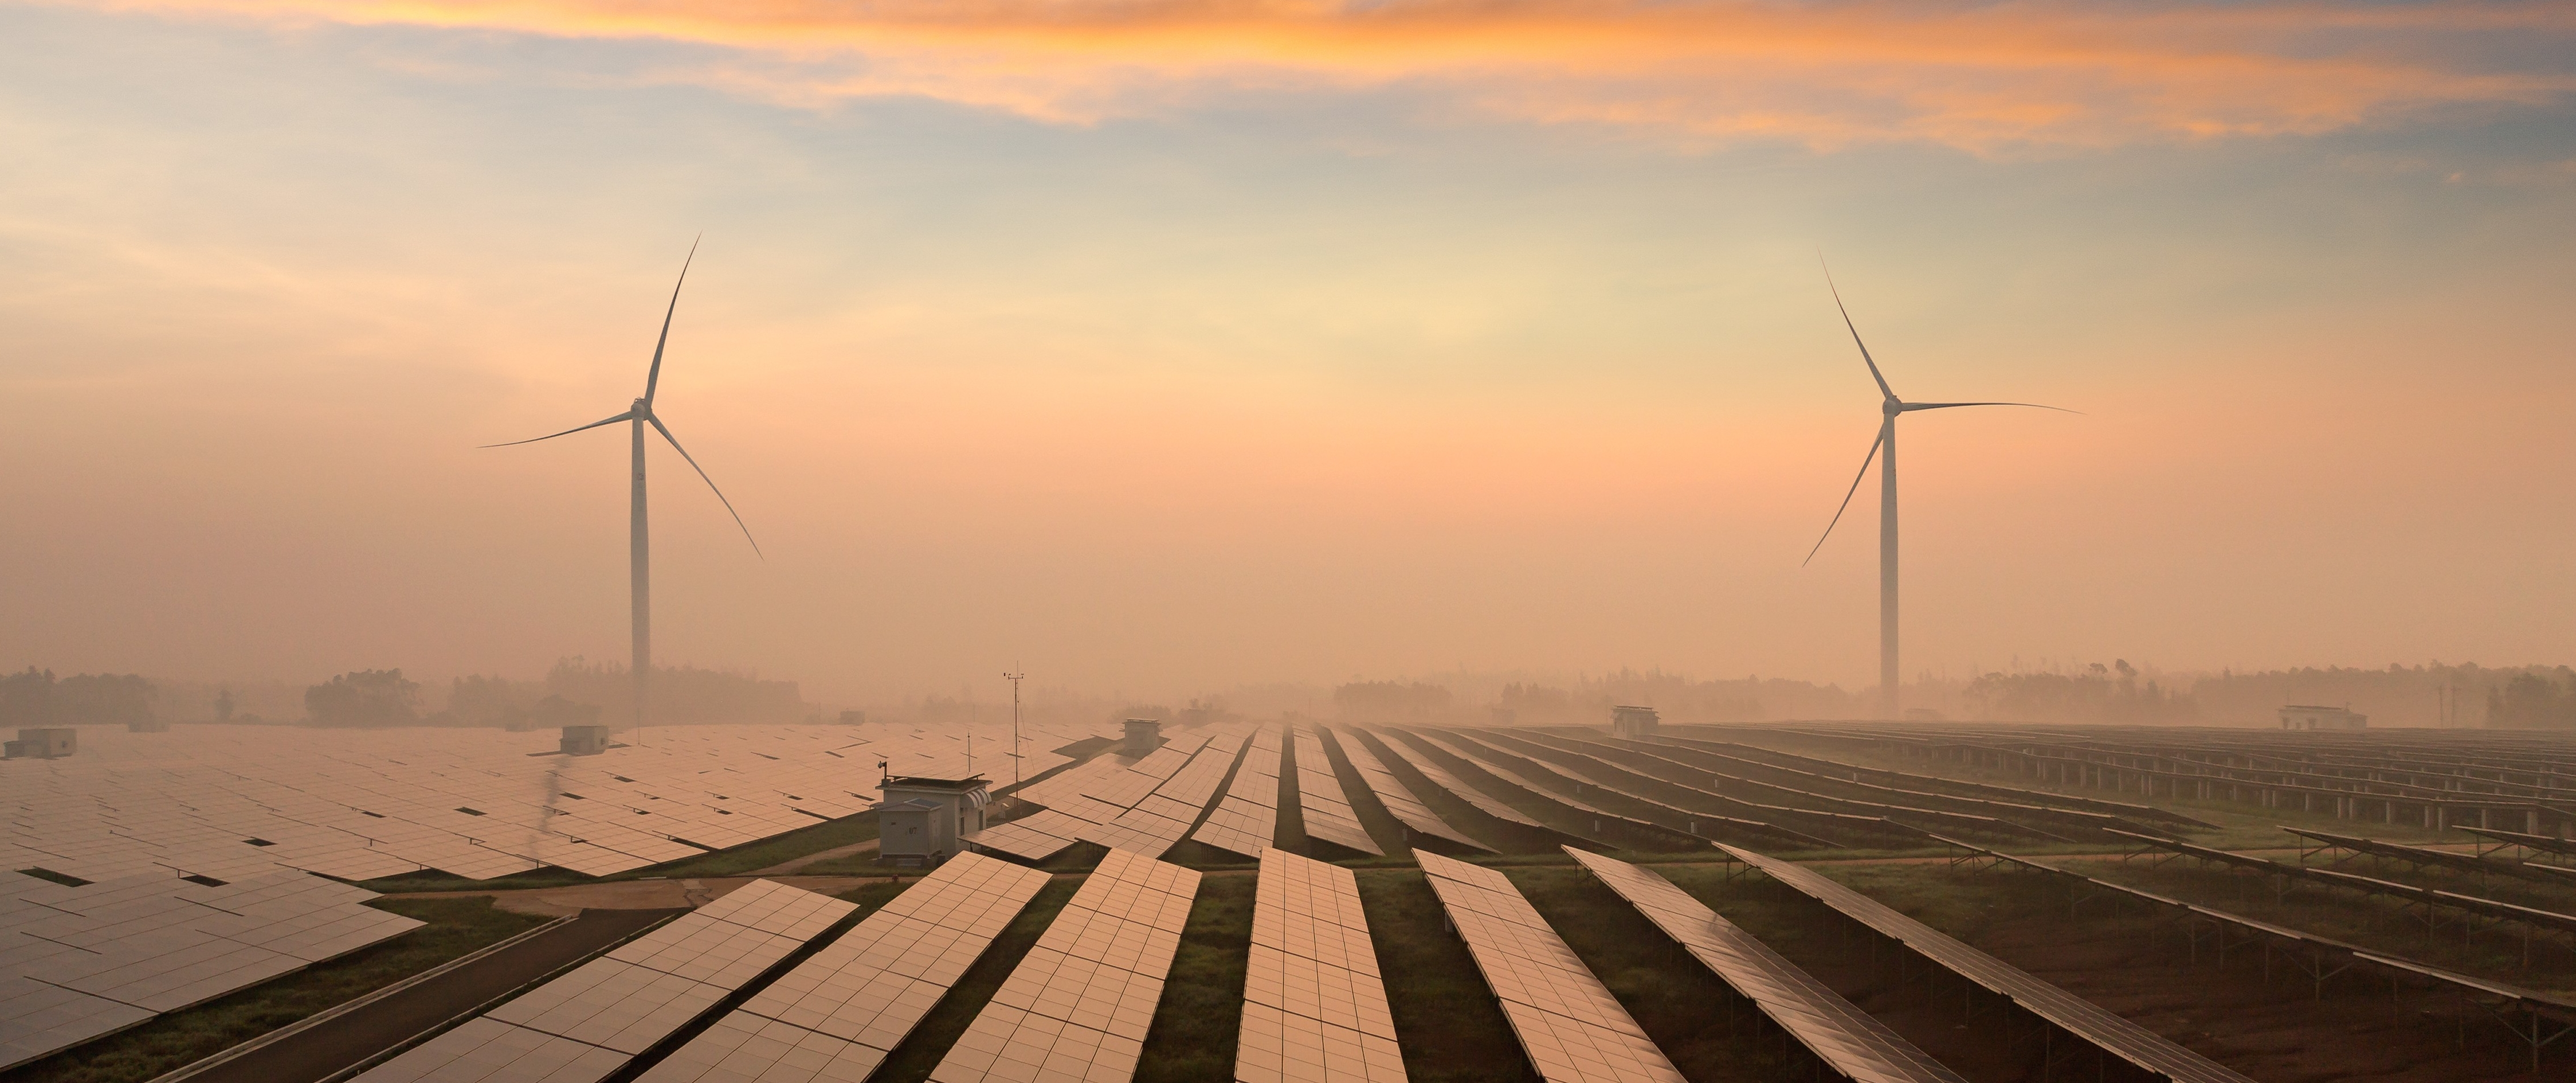 FINANCIAL ADVISORS FOR RENEWABLE ENERGIES AND CLEANTECHS